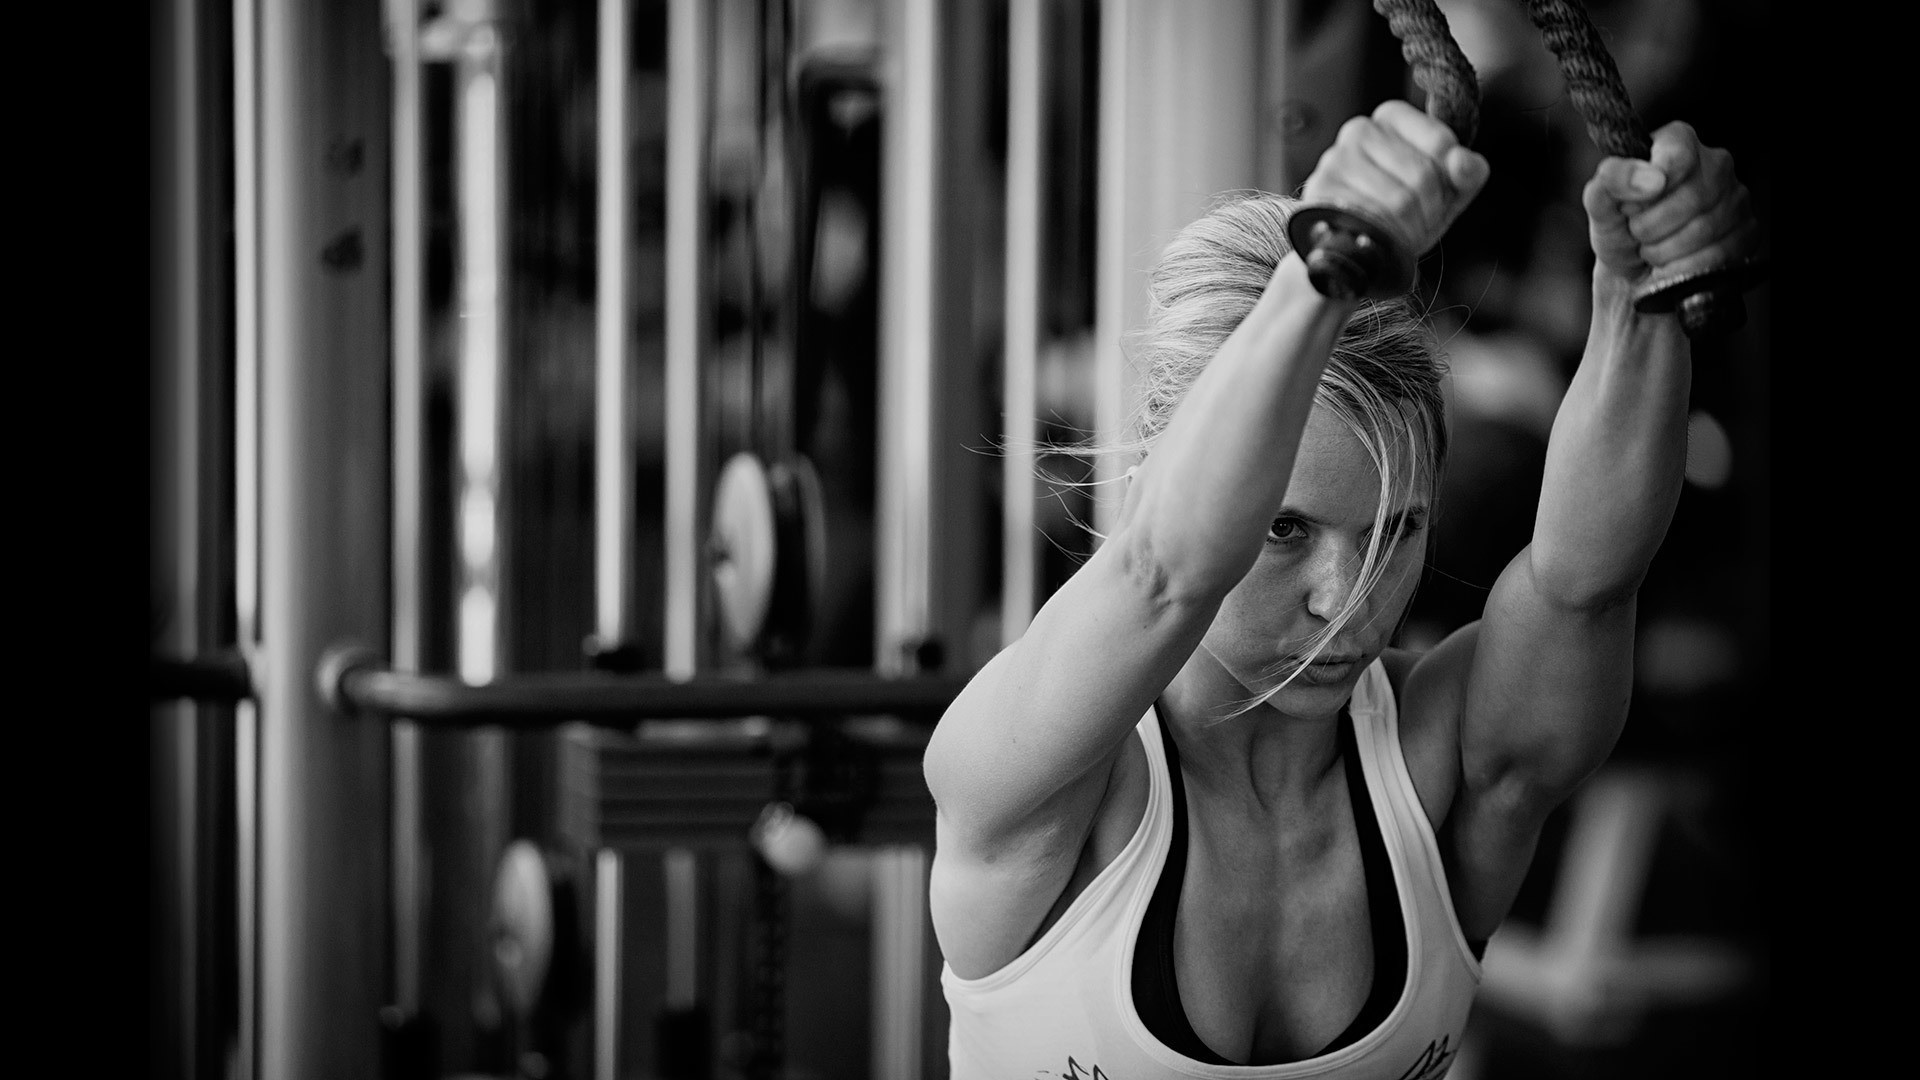 fitness Model, Gym Clothes Wallpapers HD / Desktop and Mobile Backgrounds